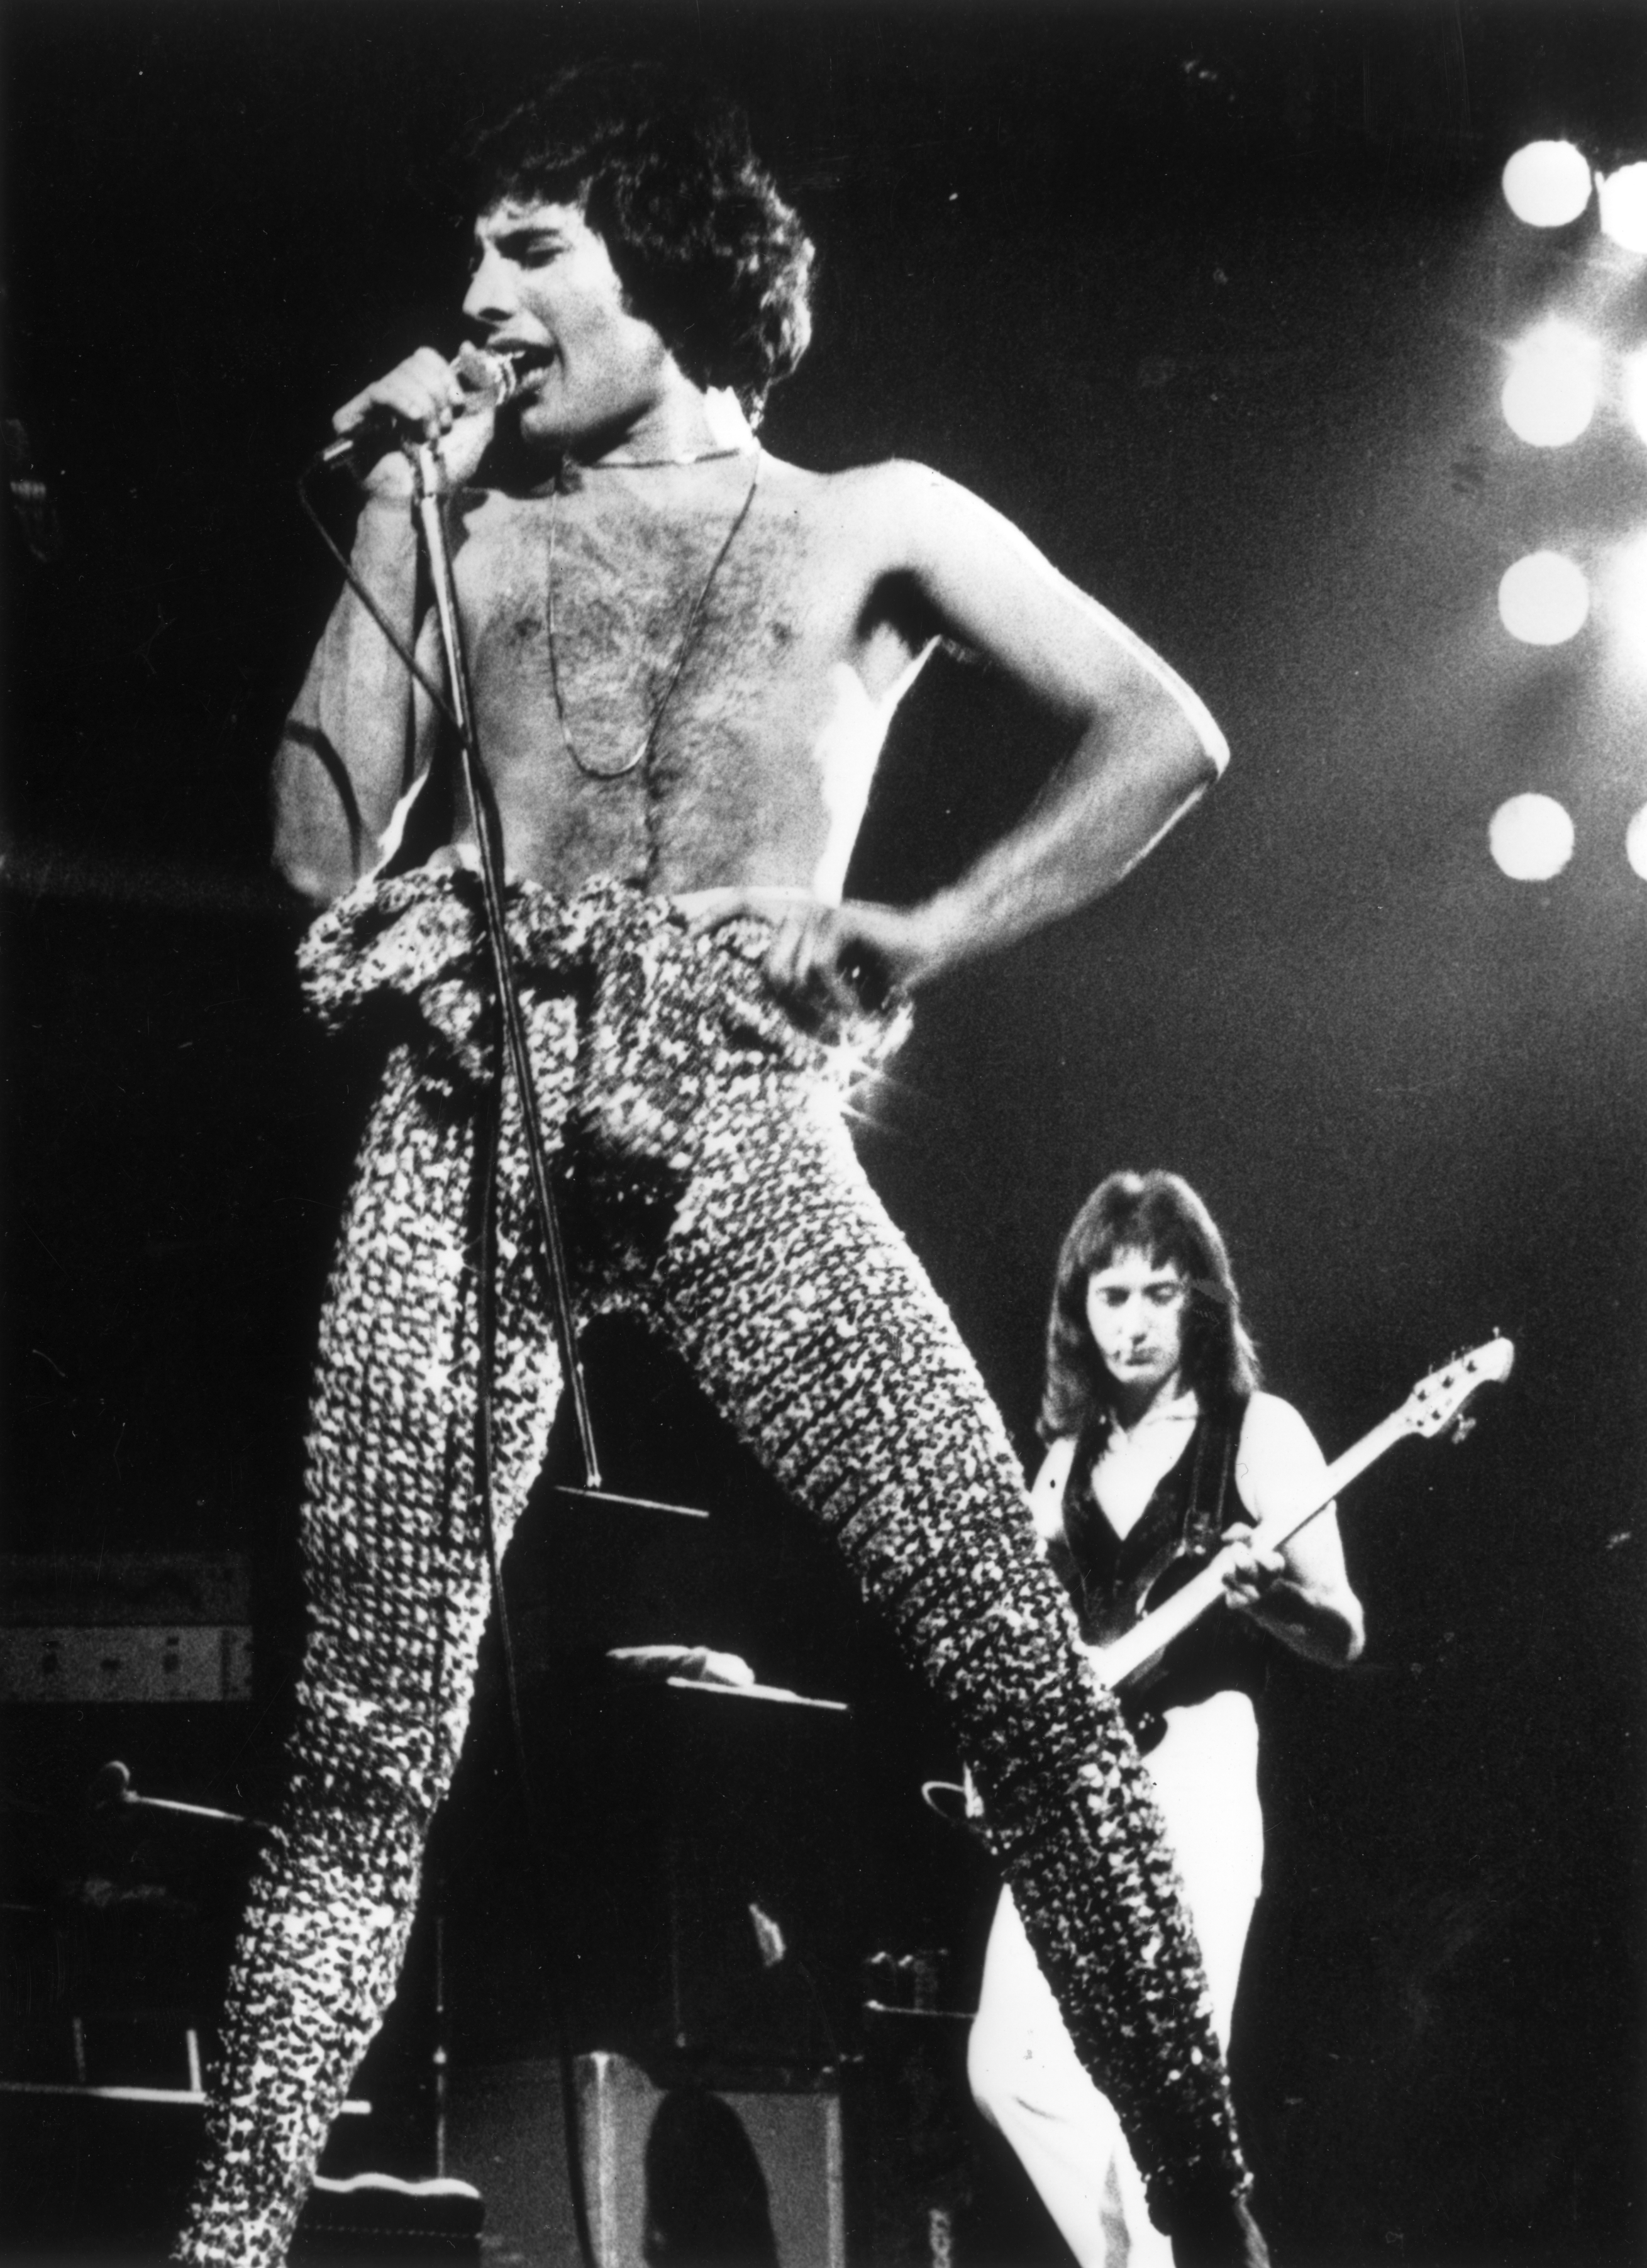 Freddie Mercury (1946 - 1991), lead singer of 70s hard rock quartet Queen, finishing the group's UK tour with two sell-out concerts at London's Earls Court. (Getty)